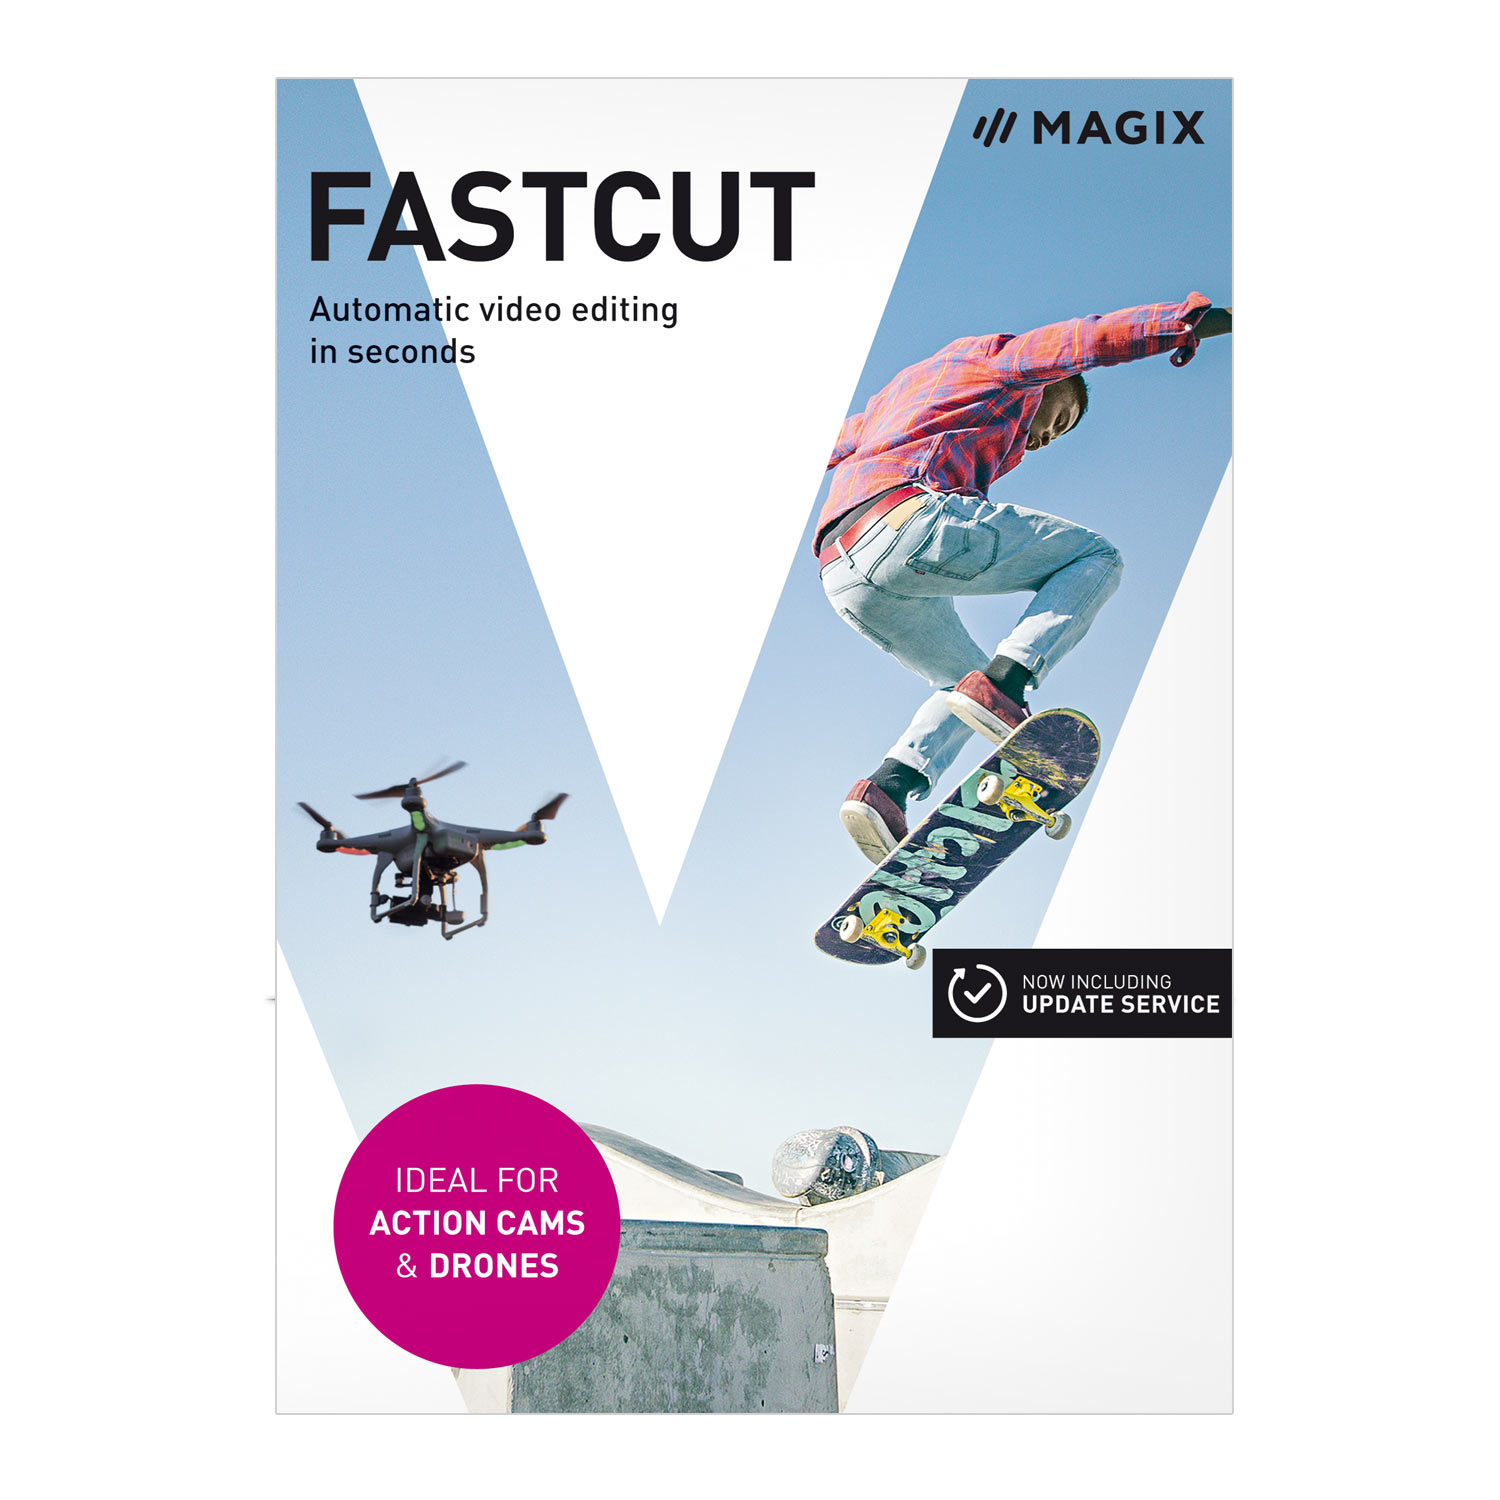 MAGIX Fastcut 3 – Software for automatic video editing [Download]